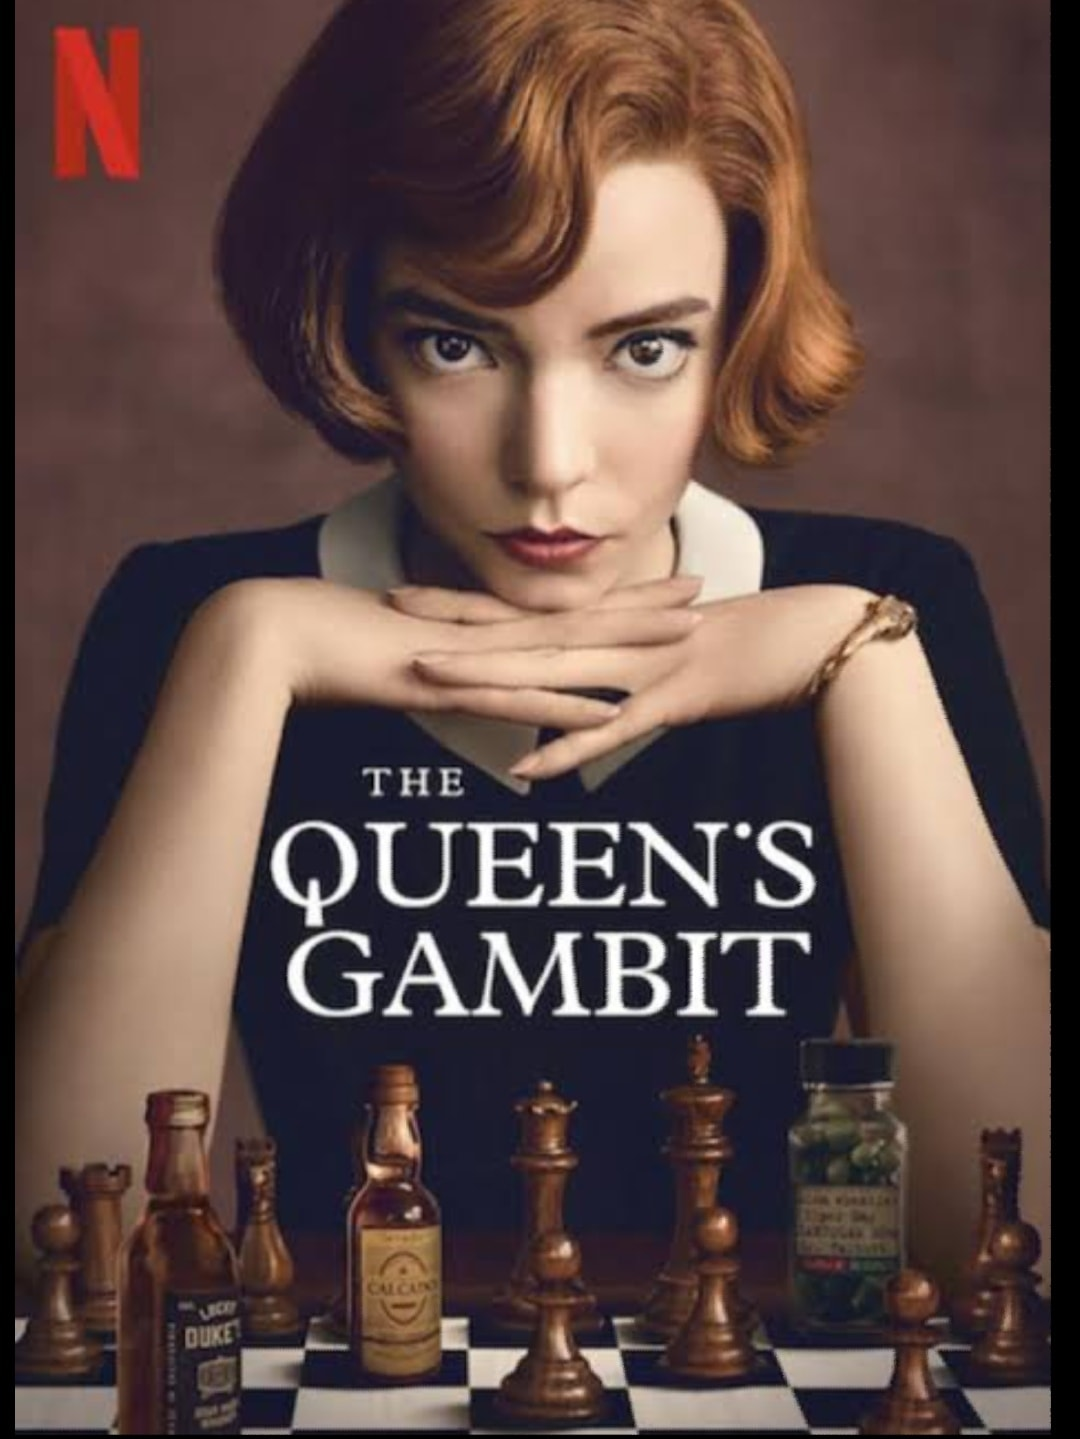 a passion to win and only win-The Queen's Gambit